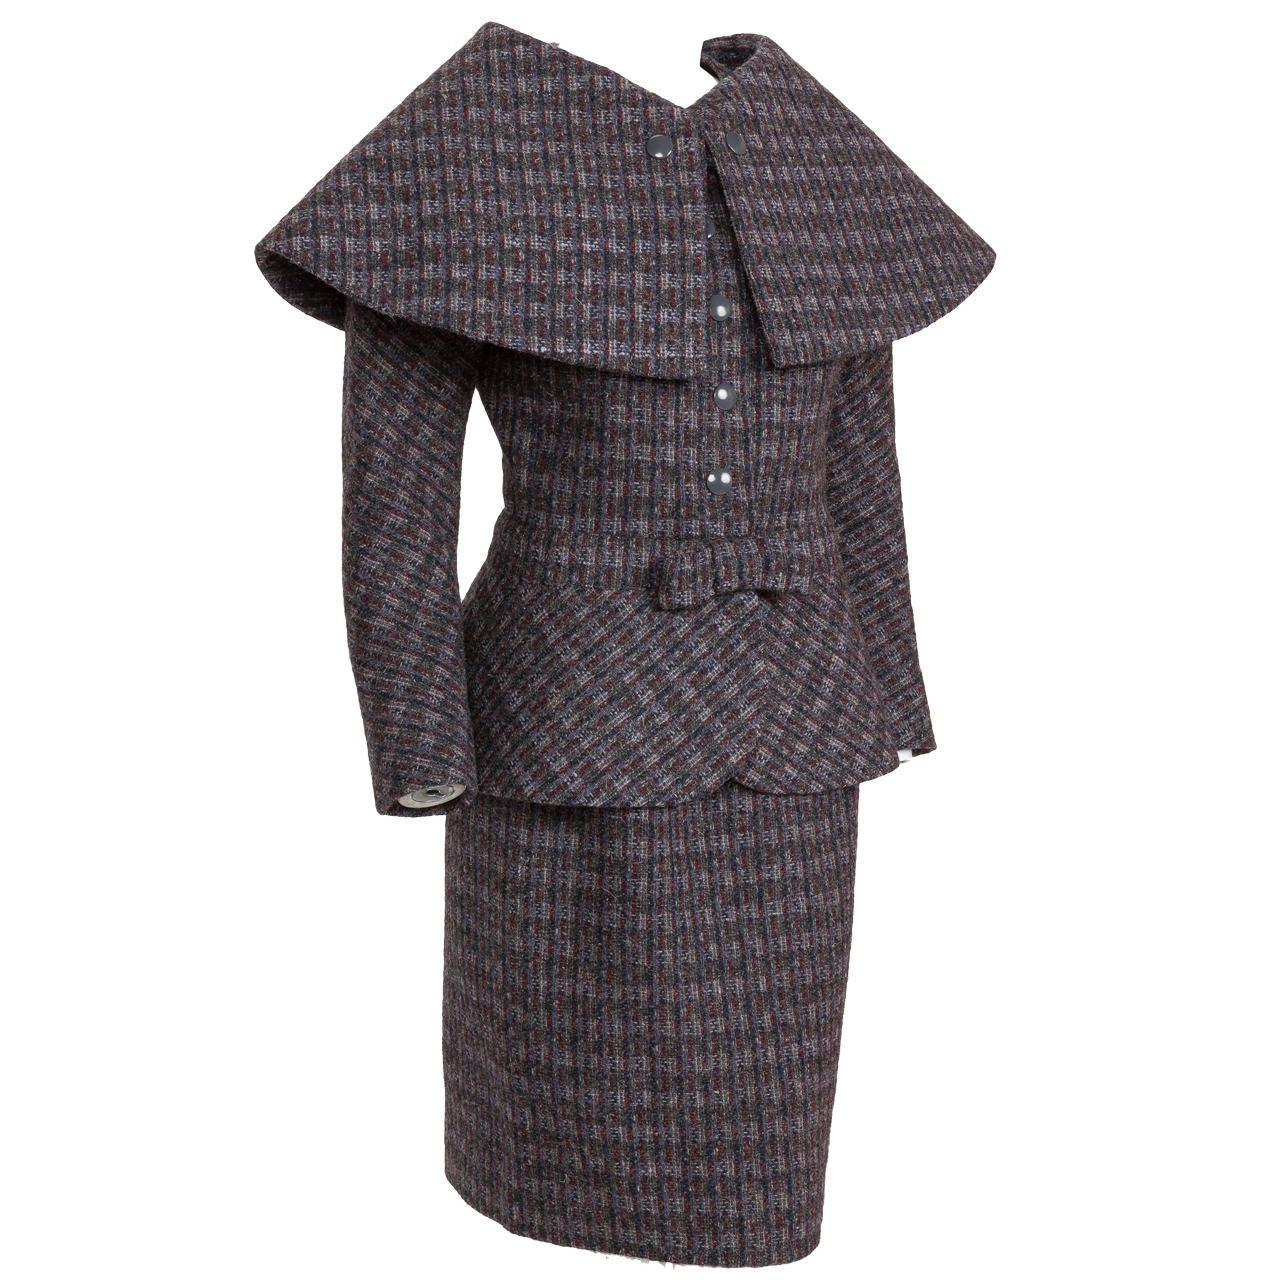 Pierre Cardin Tweed Jacket and Skirt Ensemble Suit w/Detachable collar ca. 1982 1